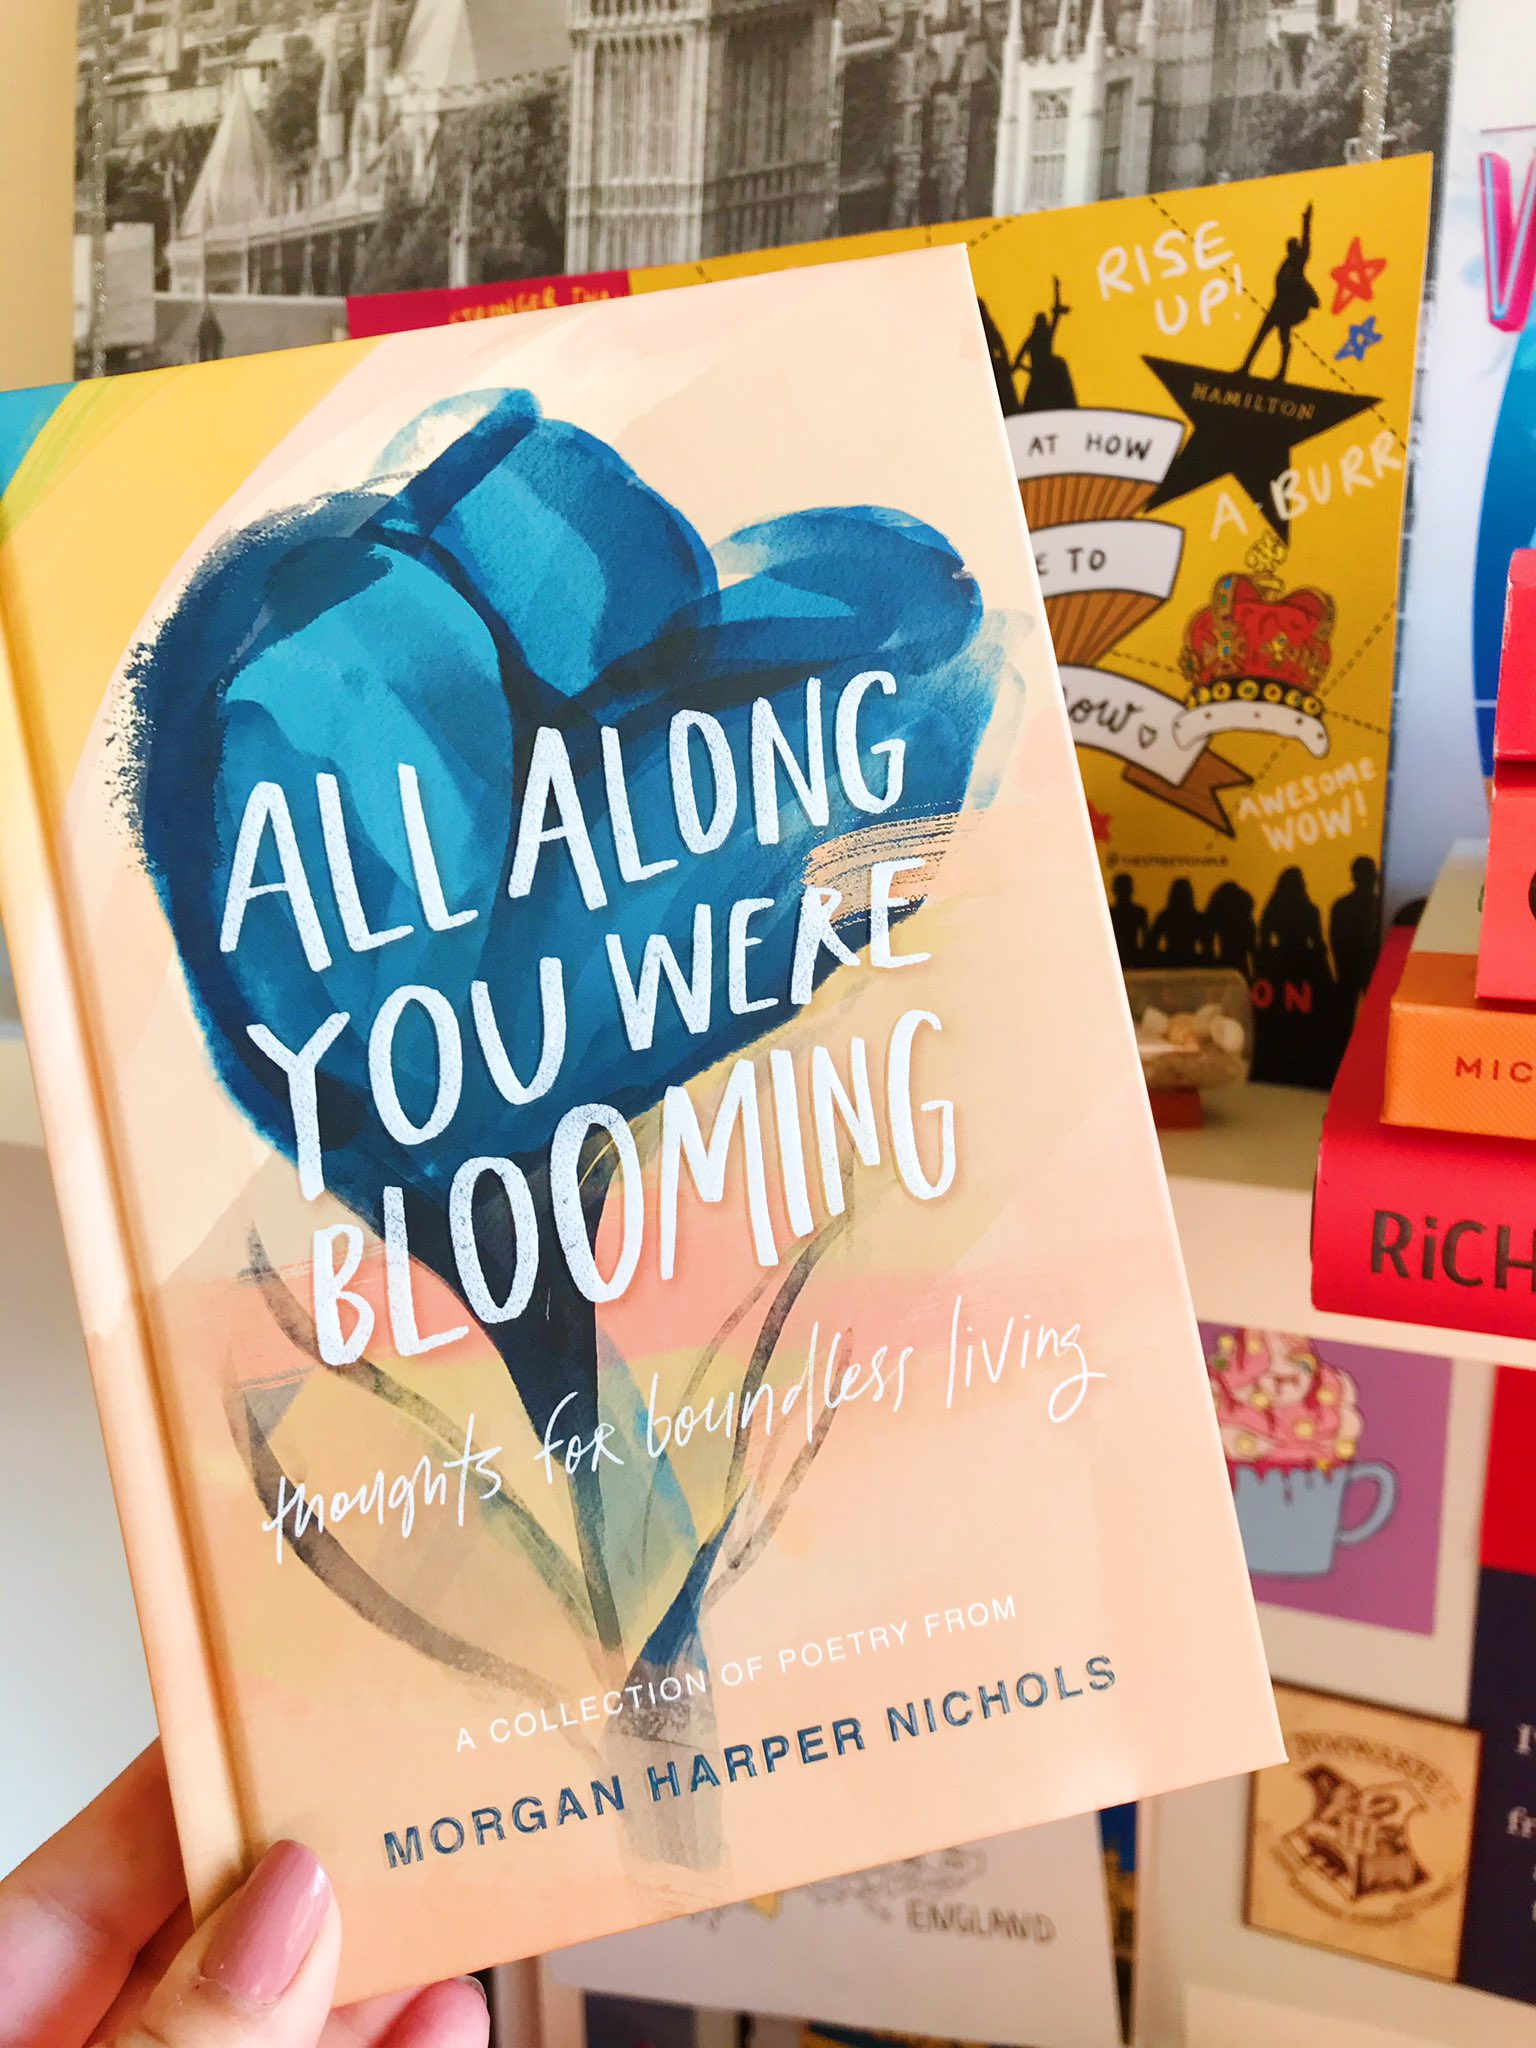 All Along You Were Blooming by Morgan Harper Nicholls held up in front of desk